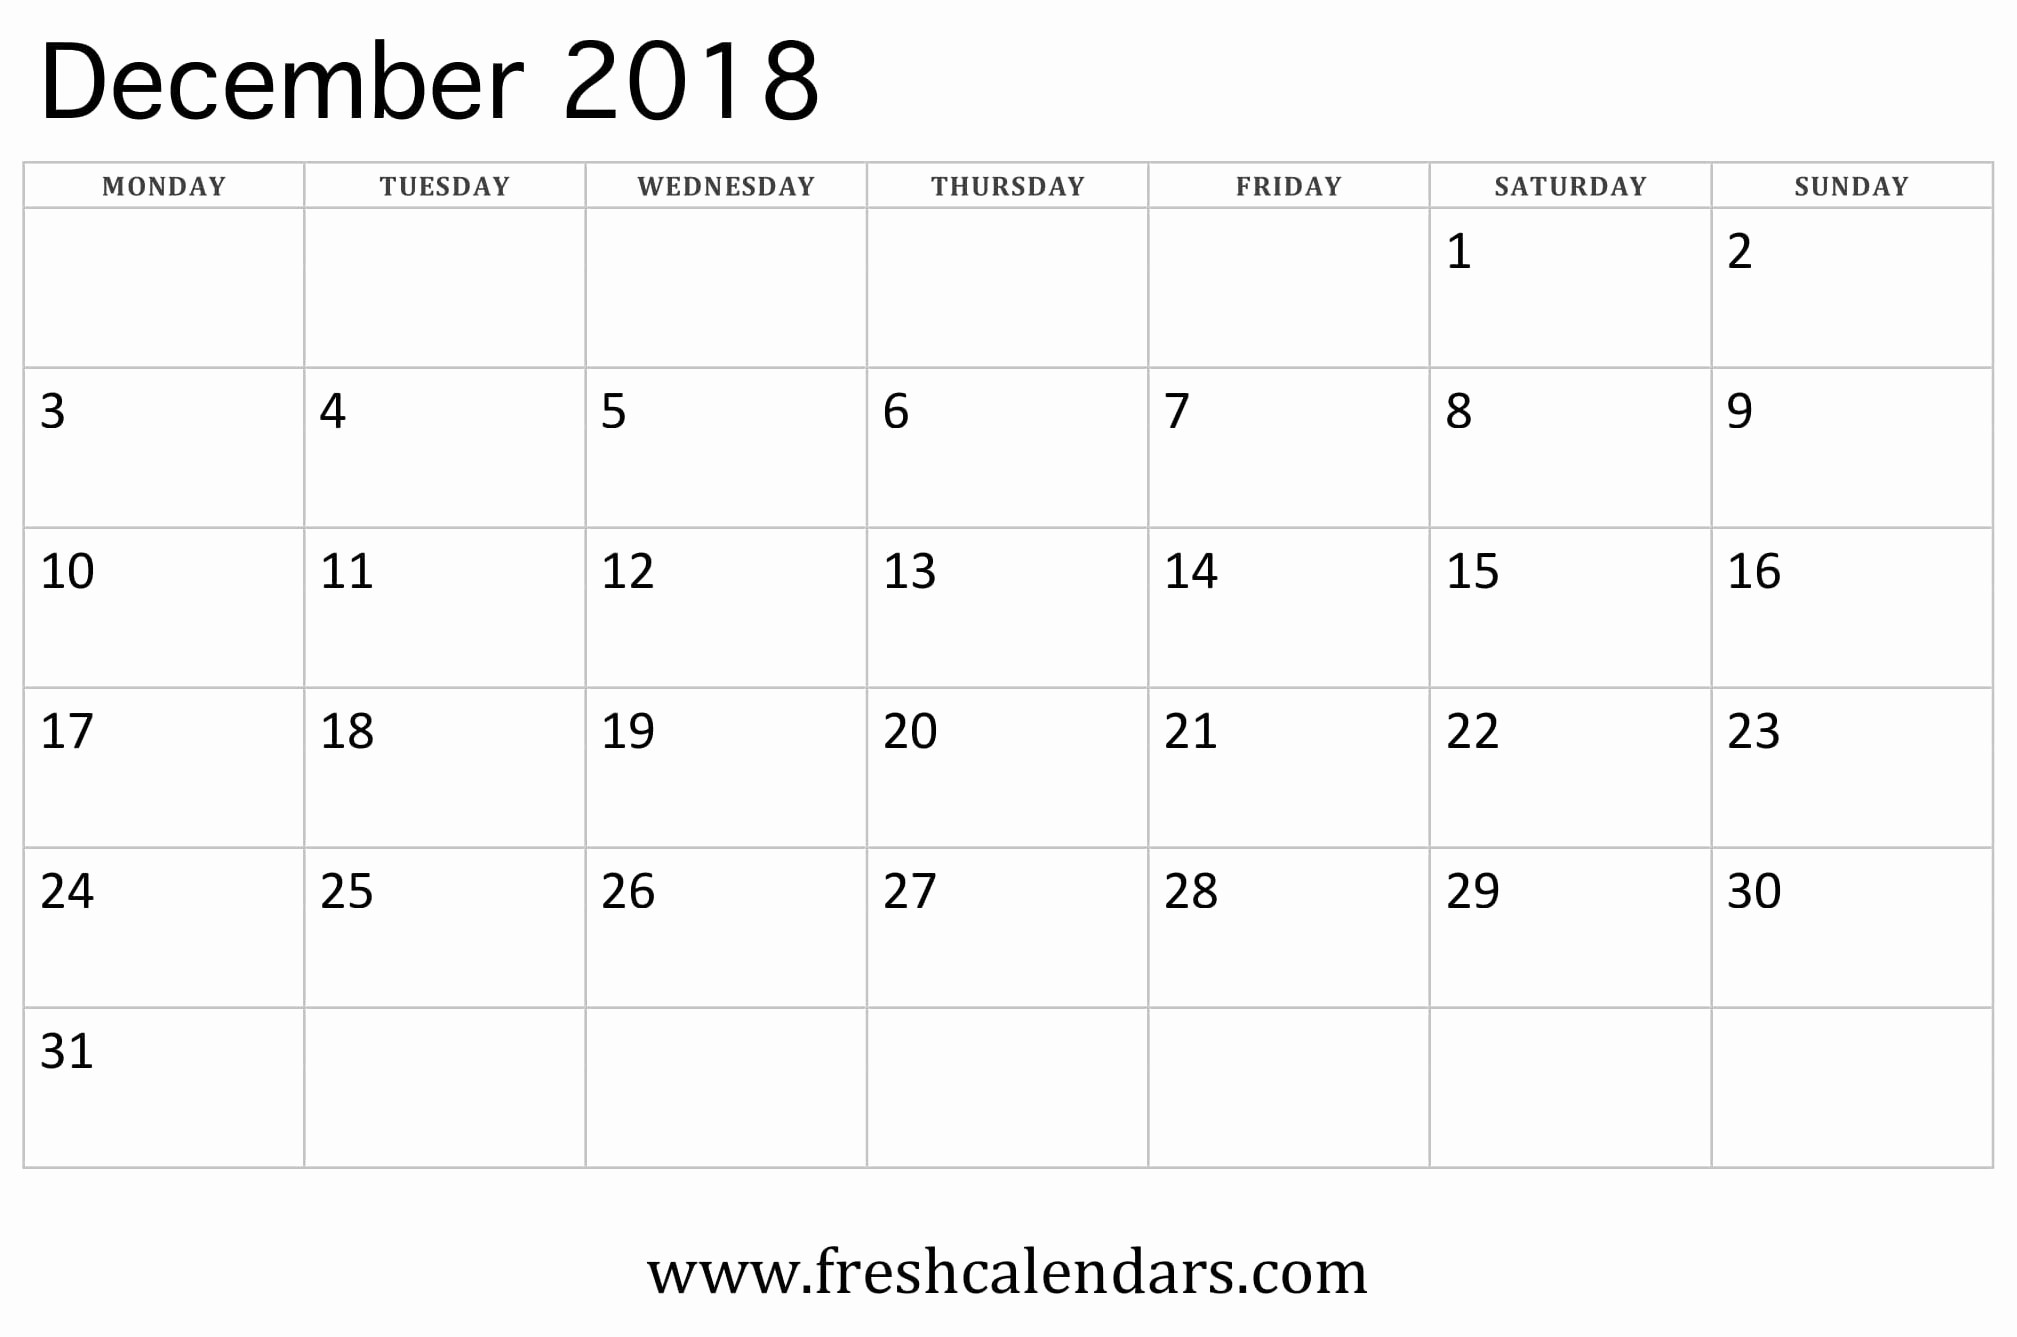 Blank Calendar Template December 2018 Unique Blank December 2018 Calendar Printable Templates